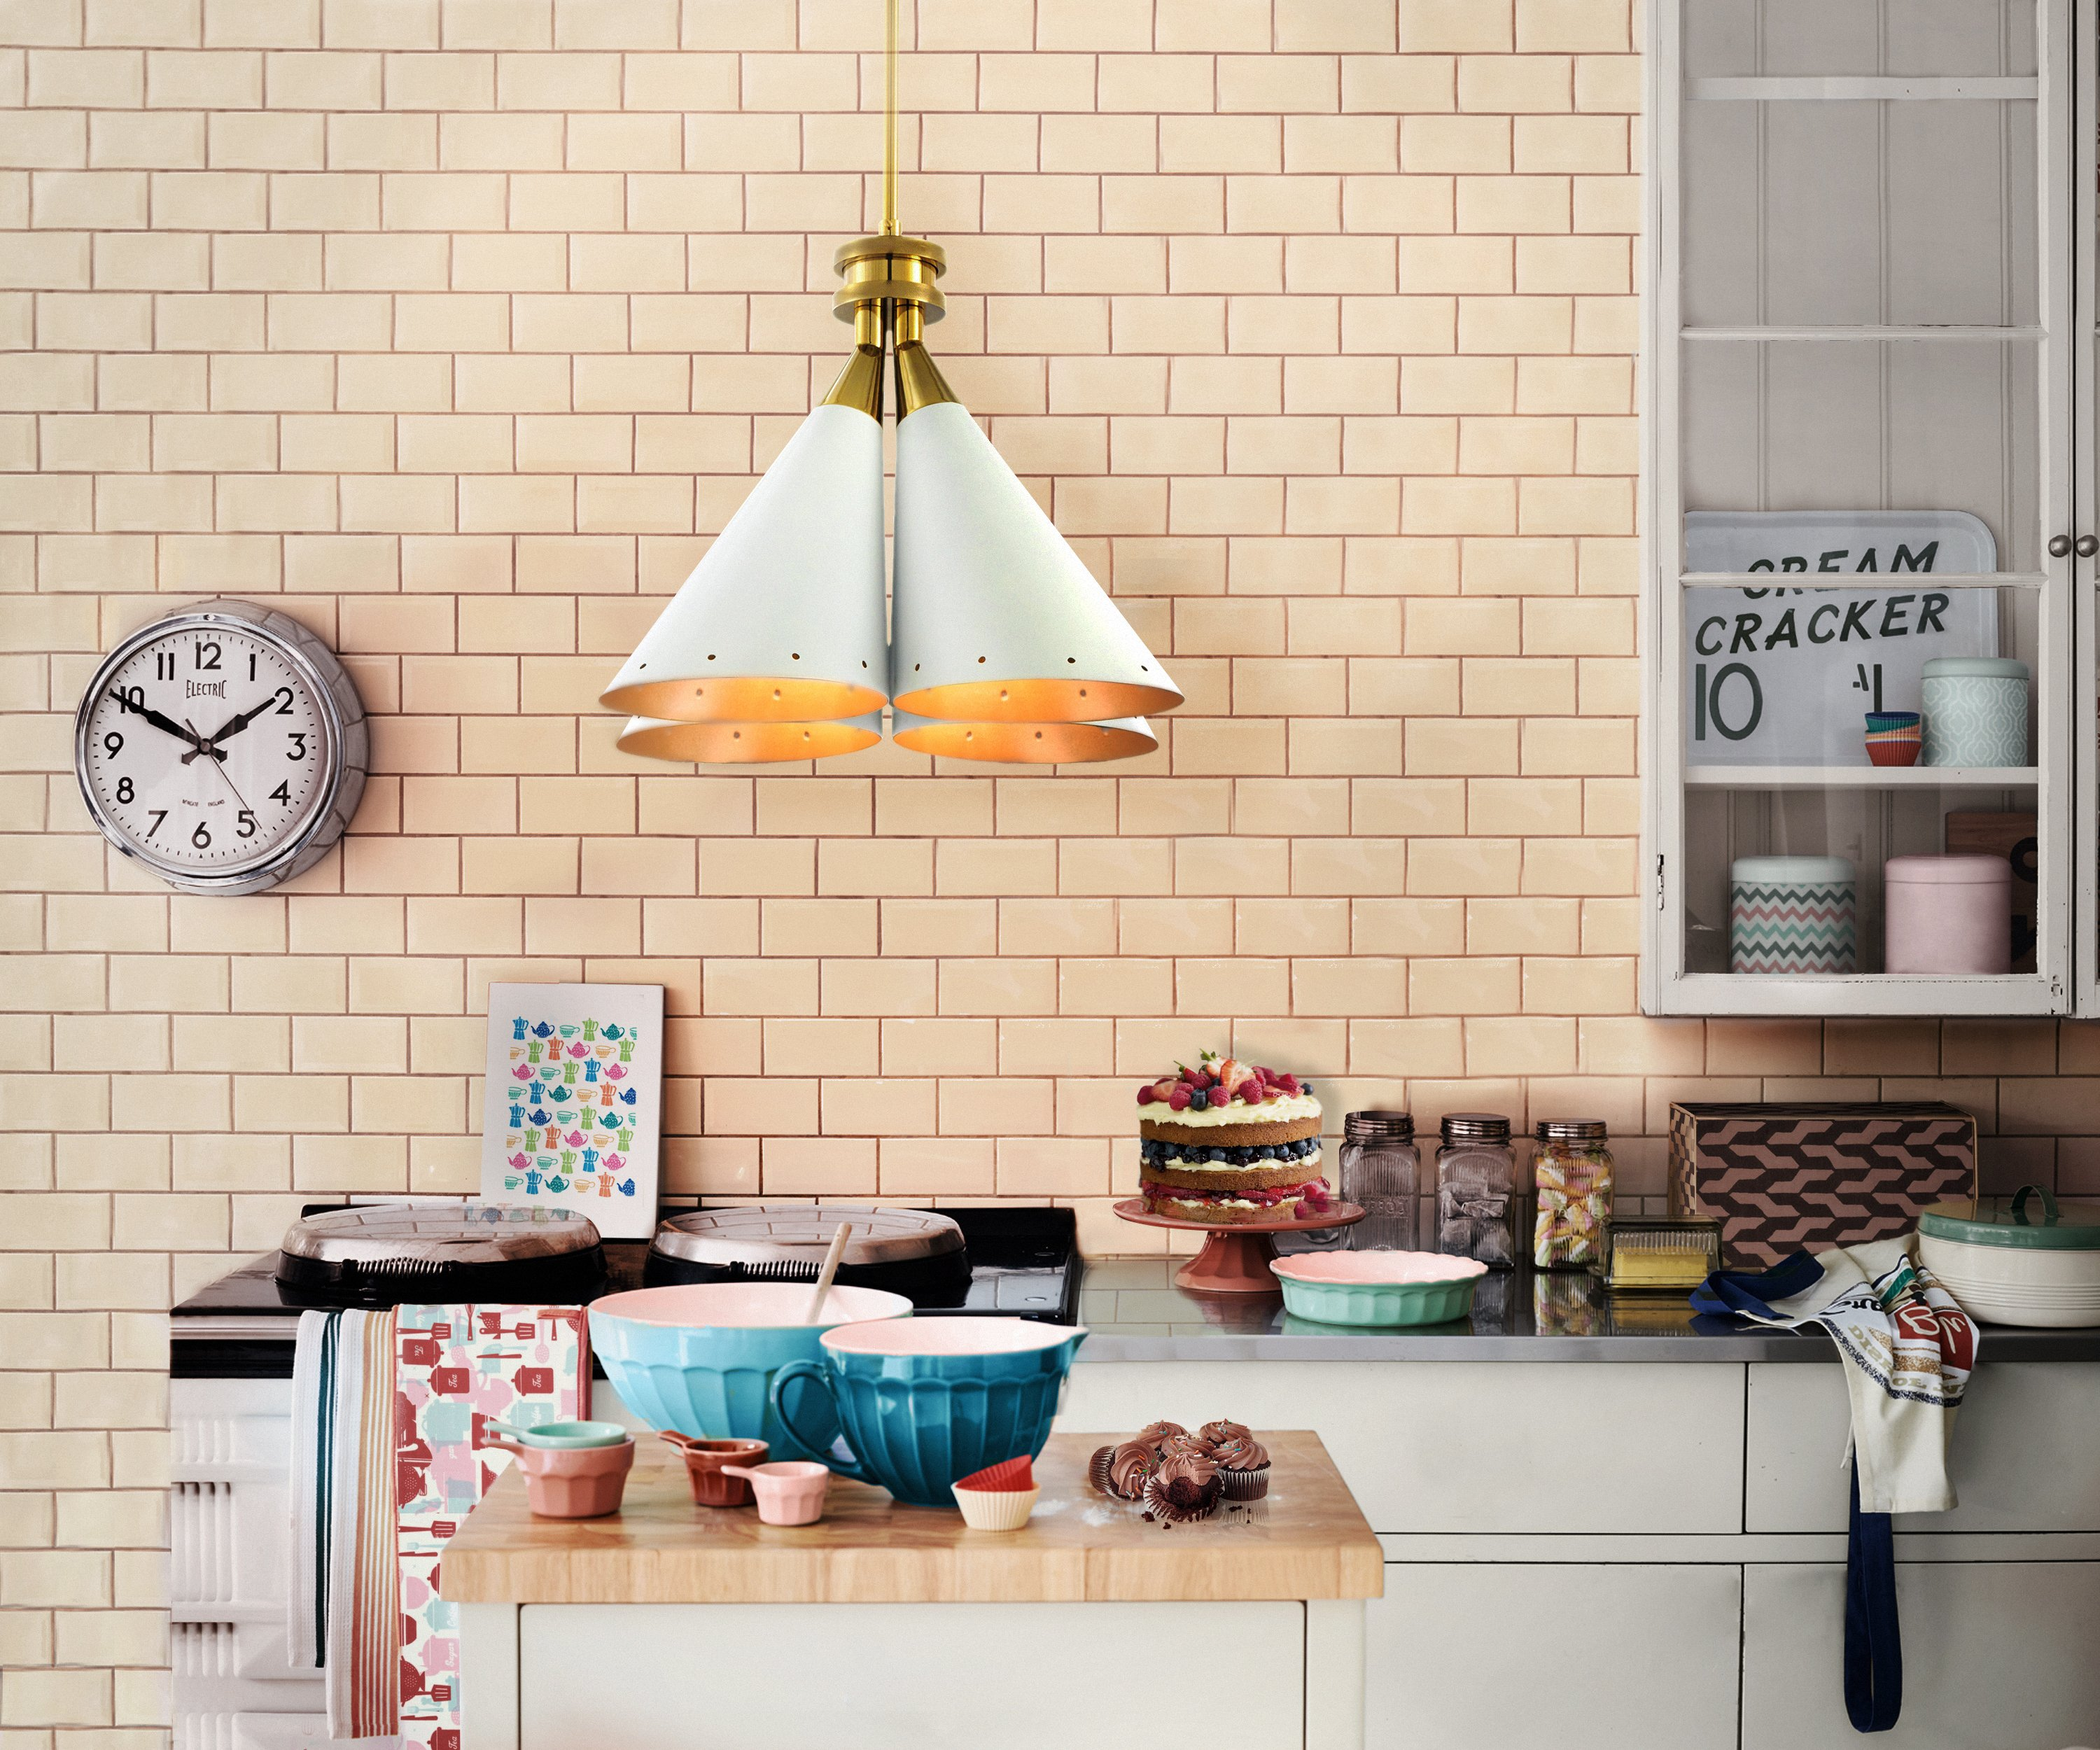 Kitchen Decor What's About Kitchen Decor That You Love So Bad? Whats About Kitchen Decor That You Love So Bad 11